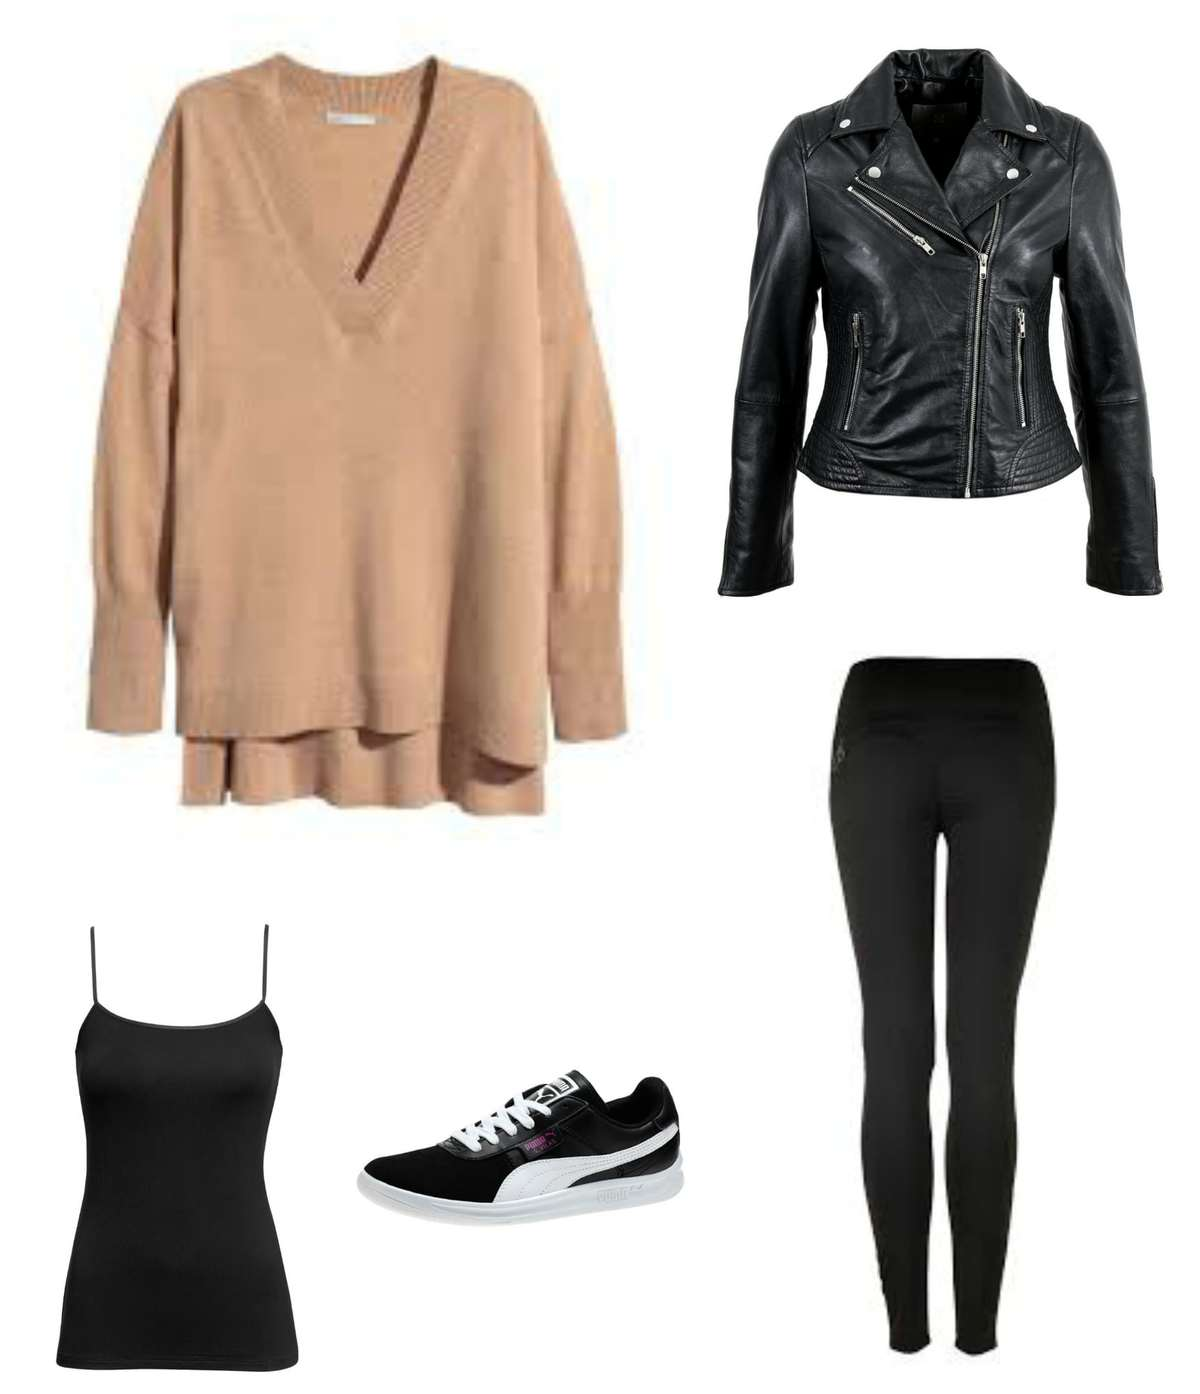 An outfit created from the travel capsule wardrobe featuring an oversized camel sweater, black leggings, a black camisole, black leather Moto jacket, and black Puma sneakers